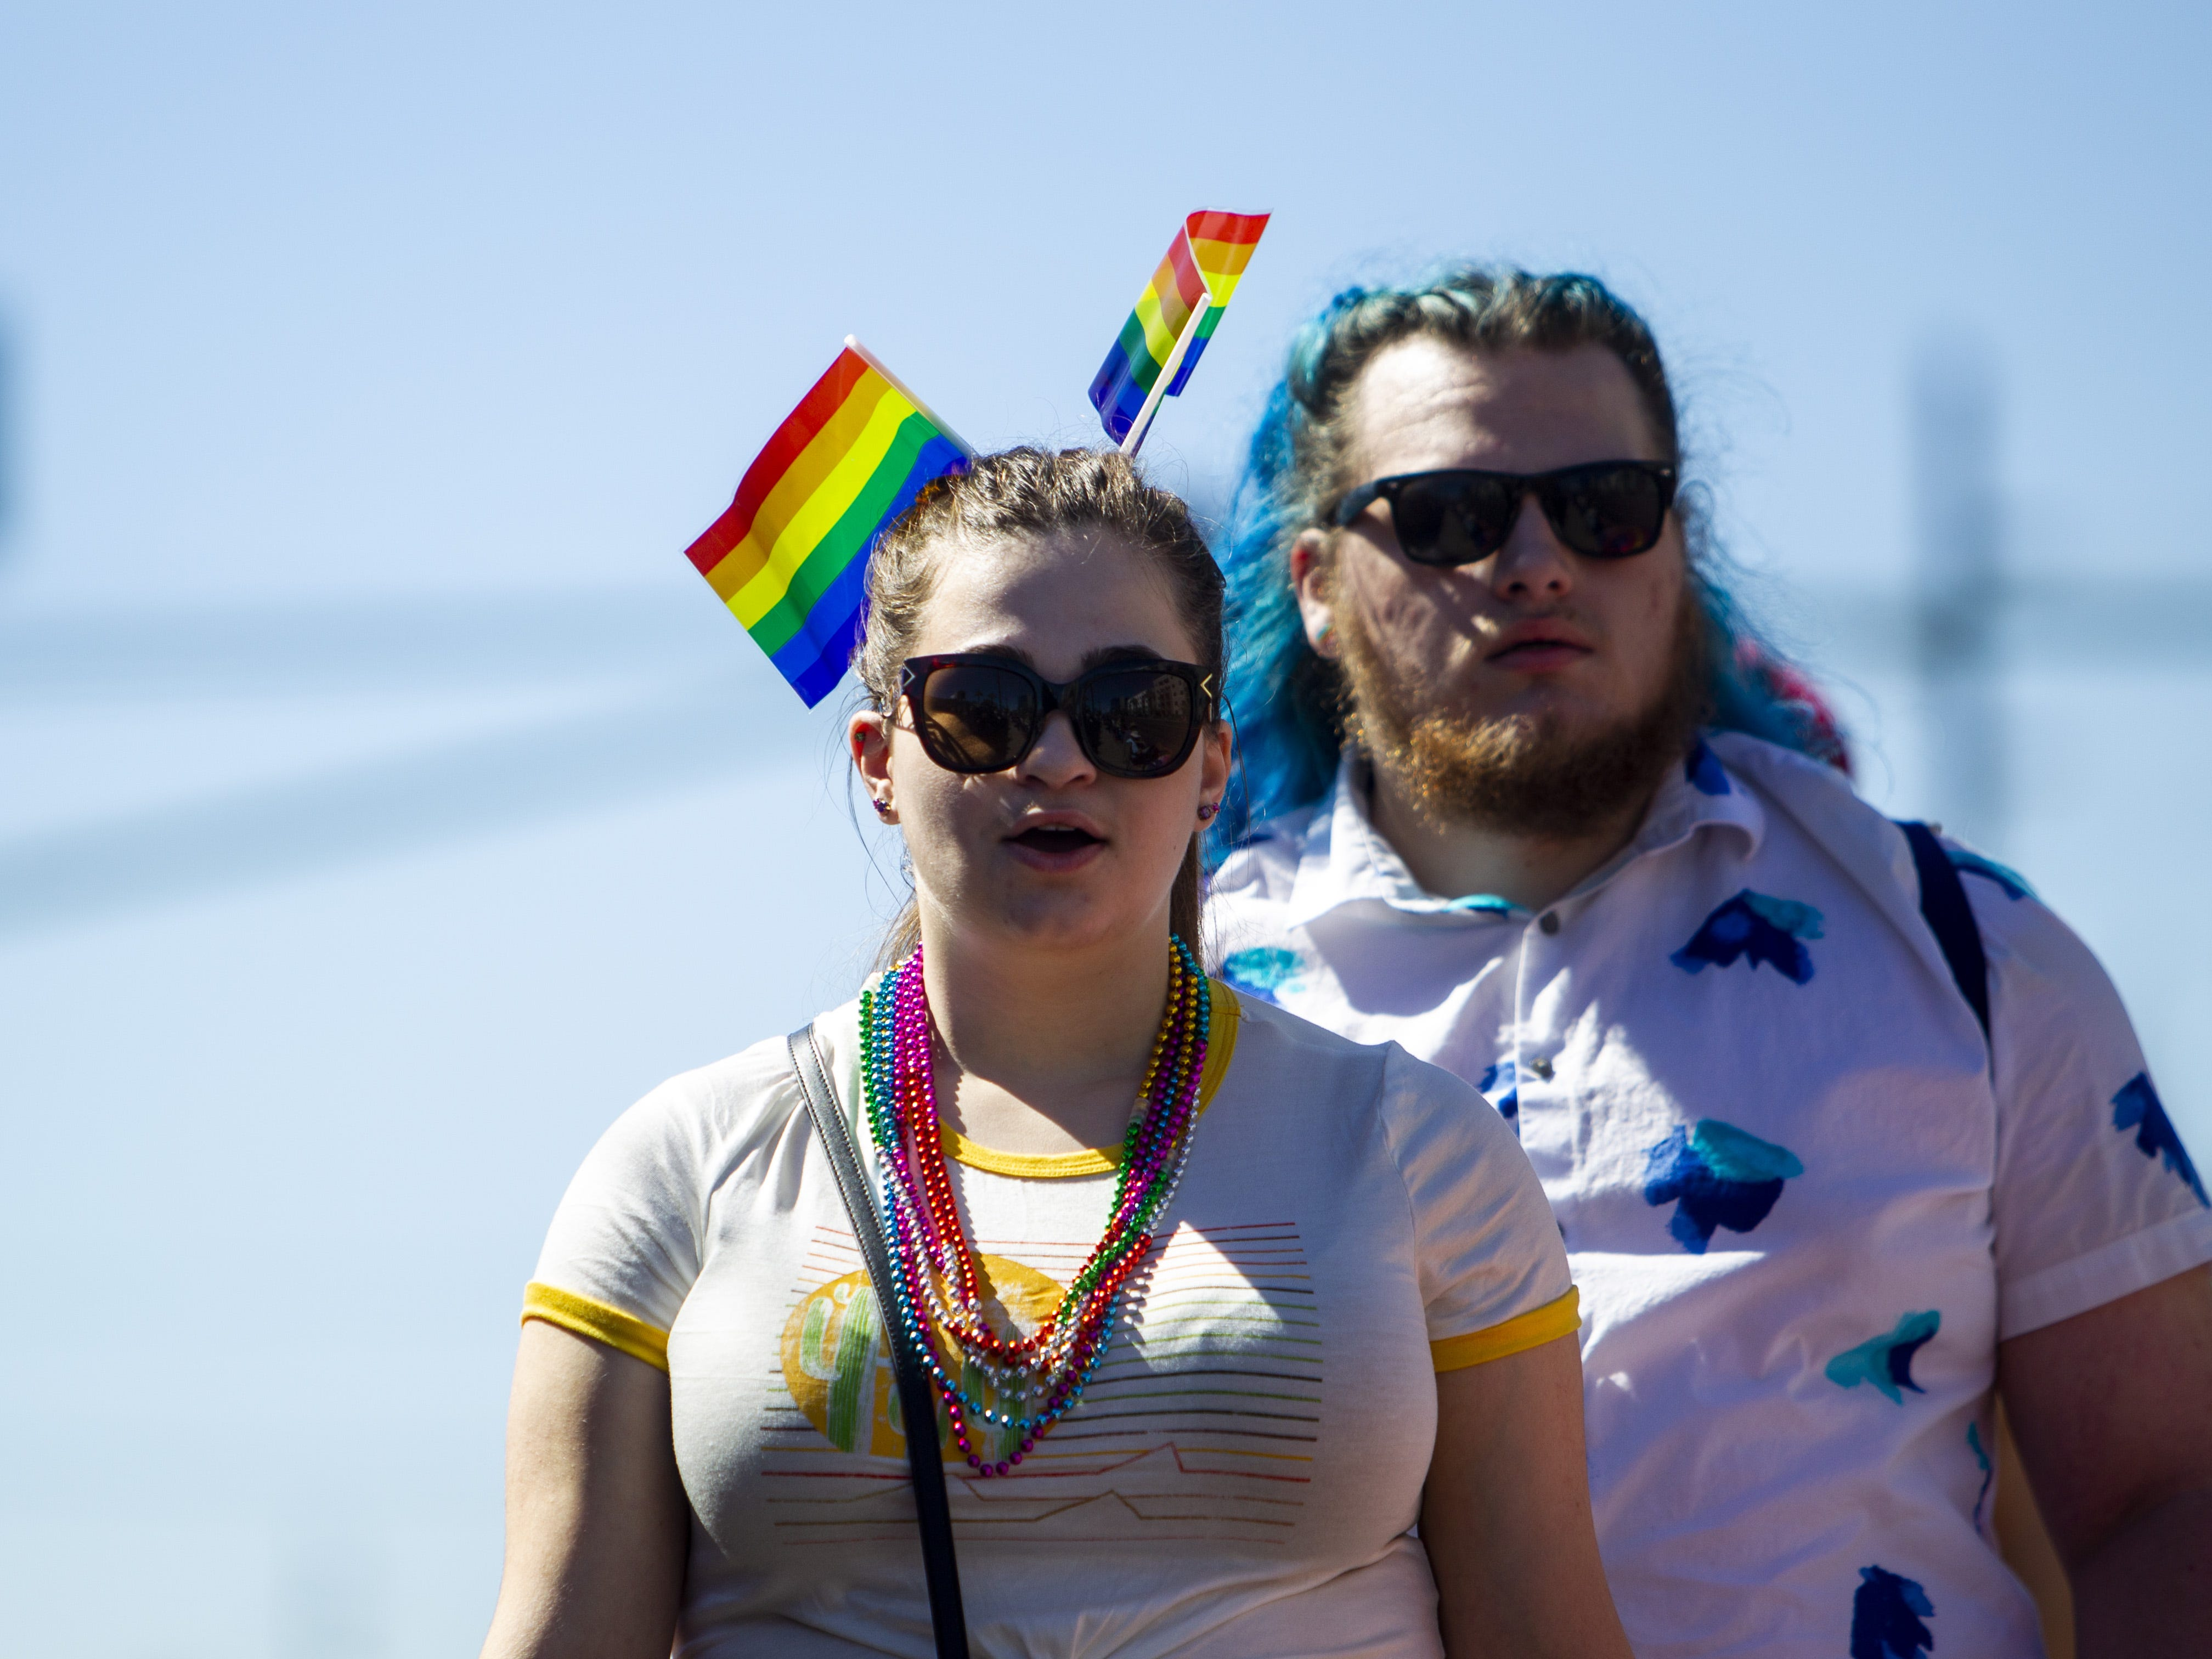 Many people wore flags in their hair for the Phoenix Pride Parade on April 7, 2019.